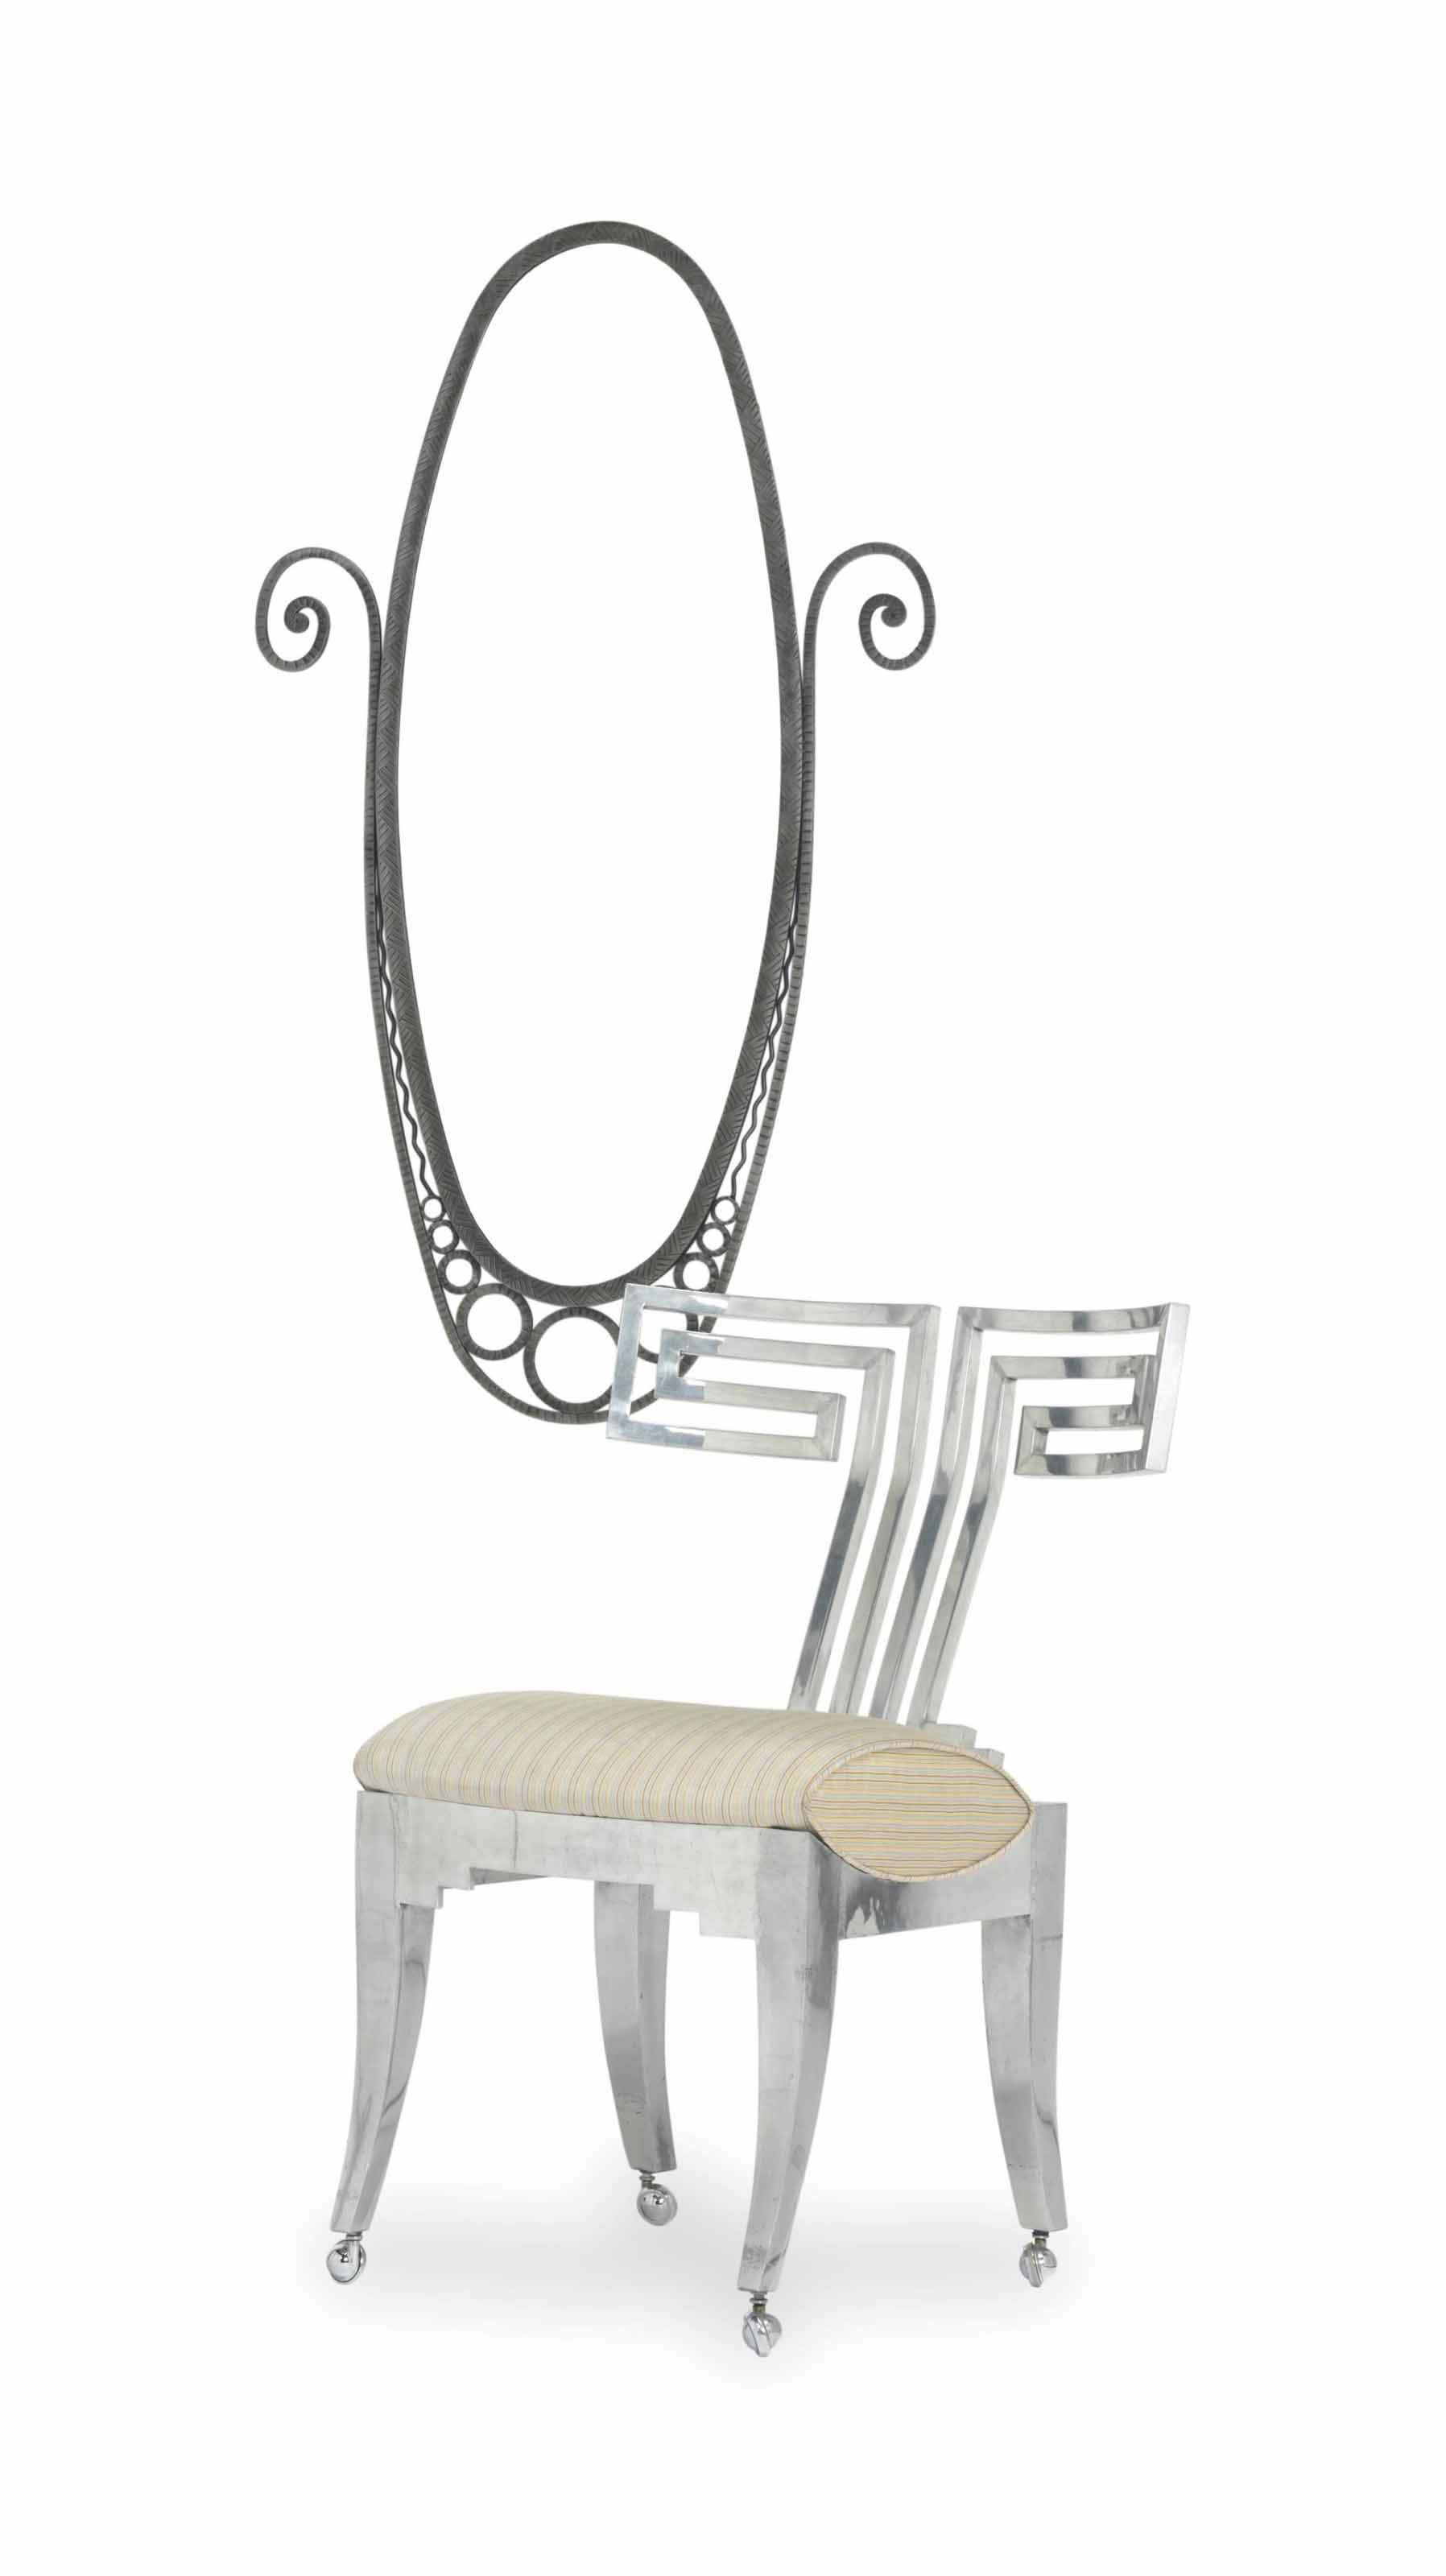 A CHROMED METAL SIDE CHAIR AND